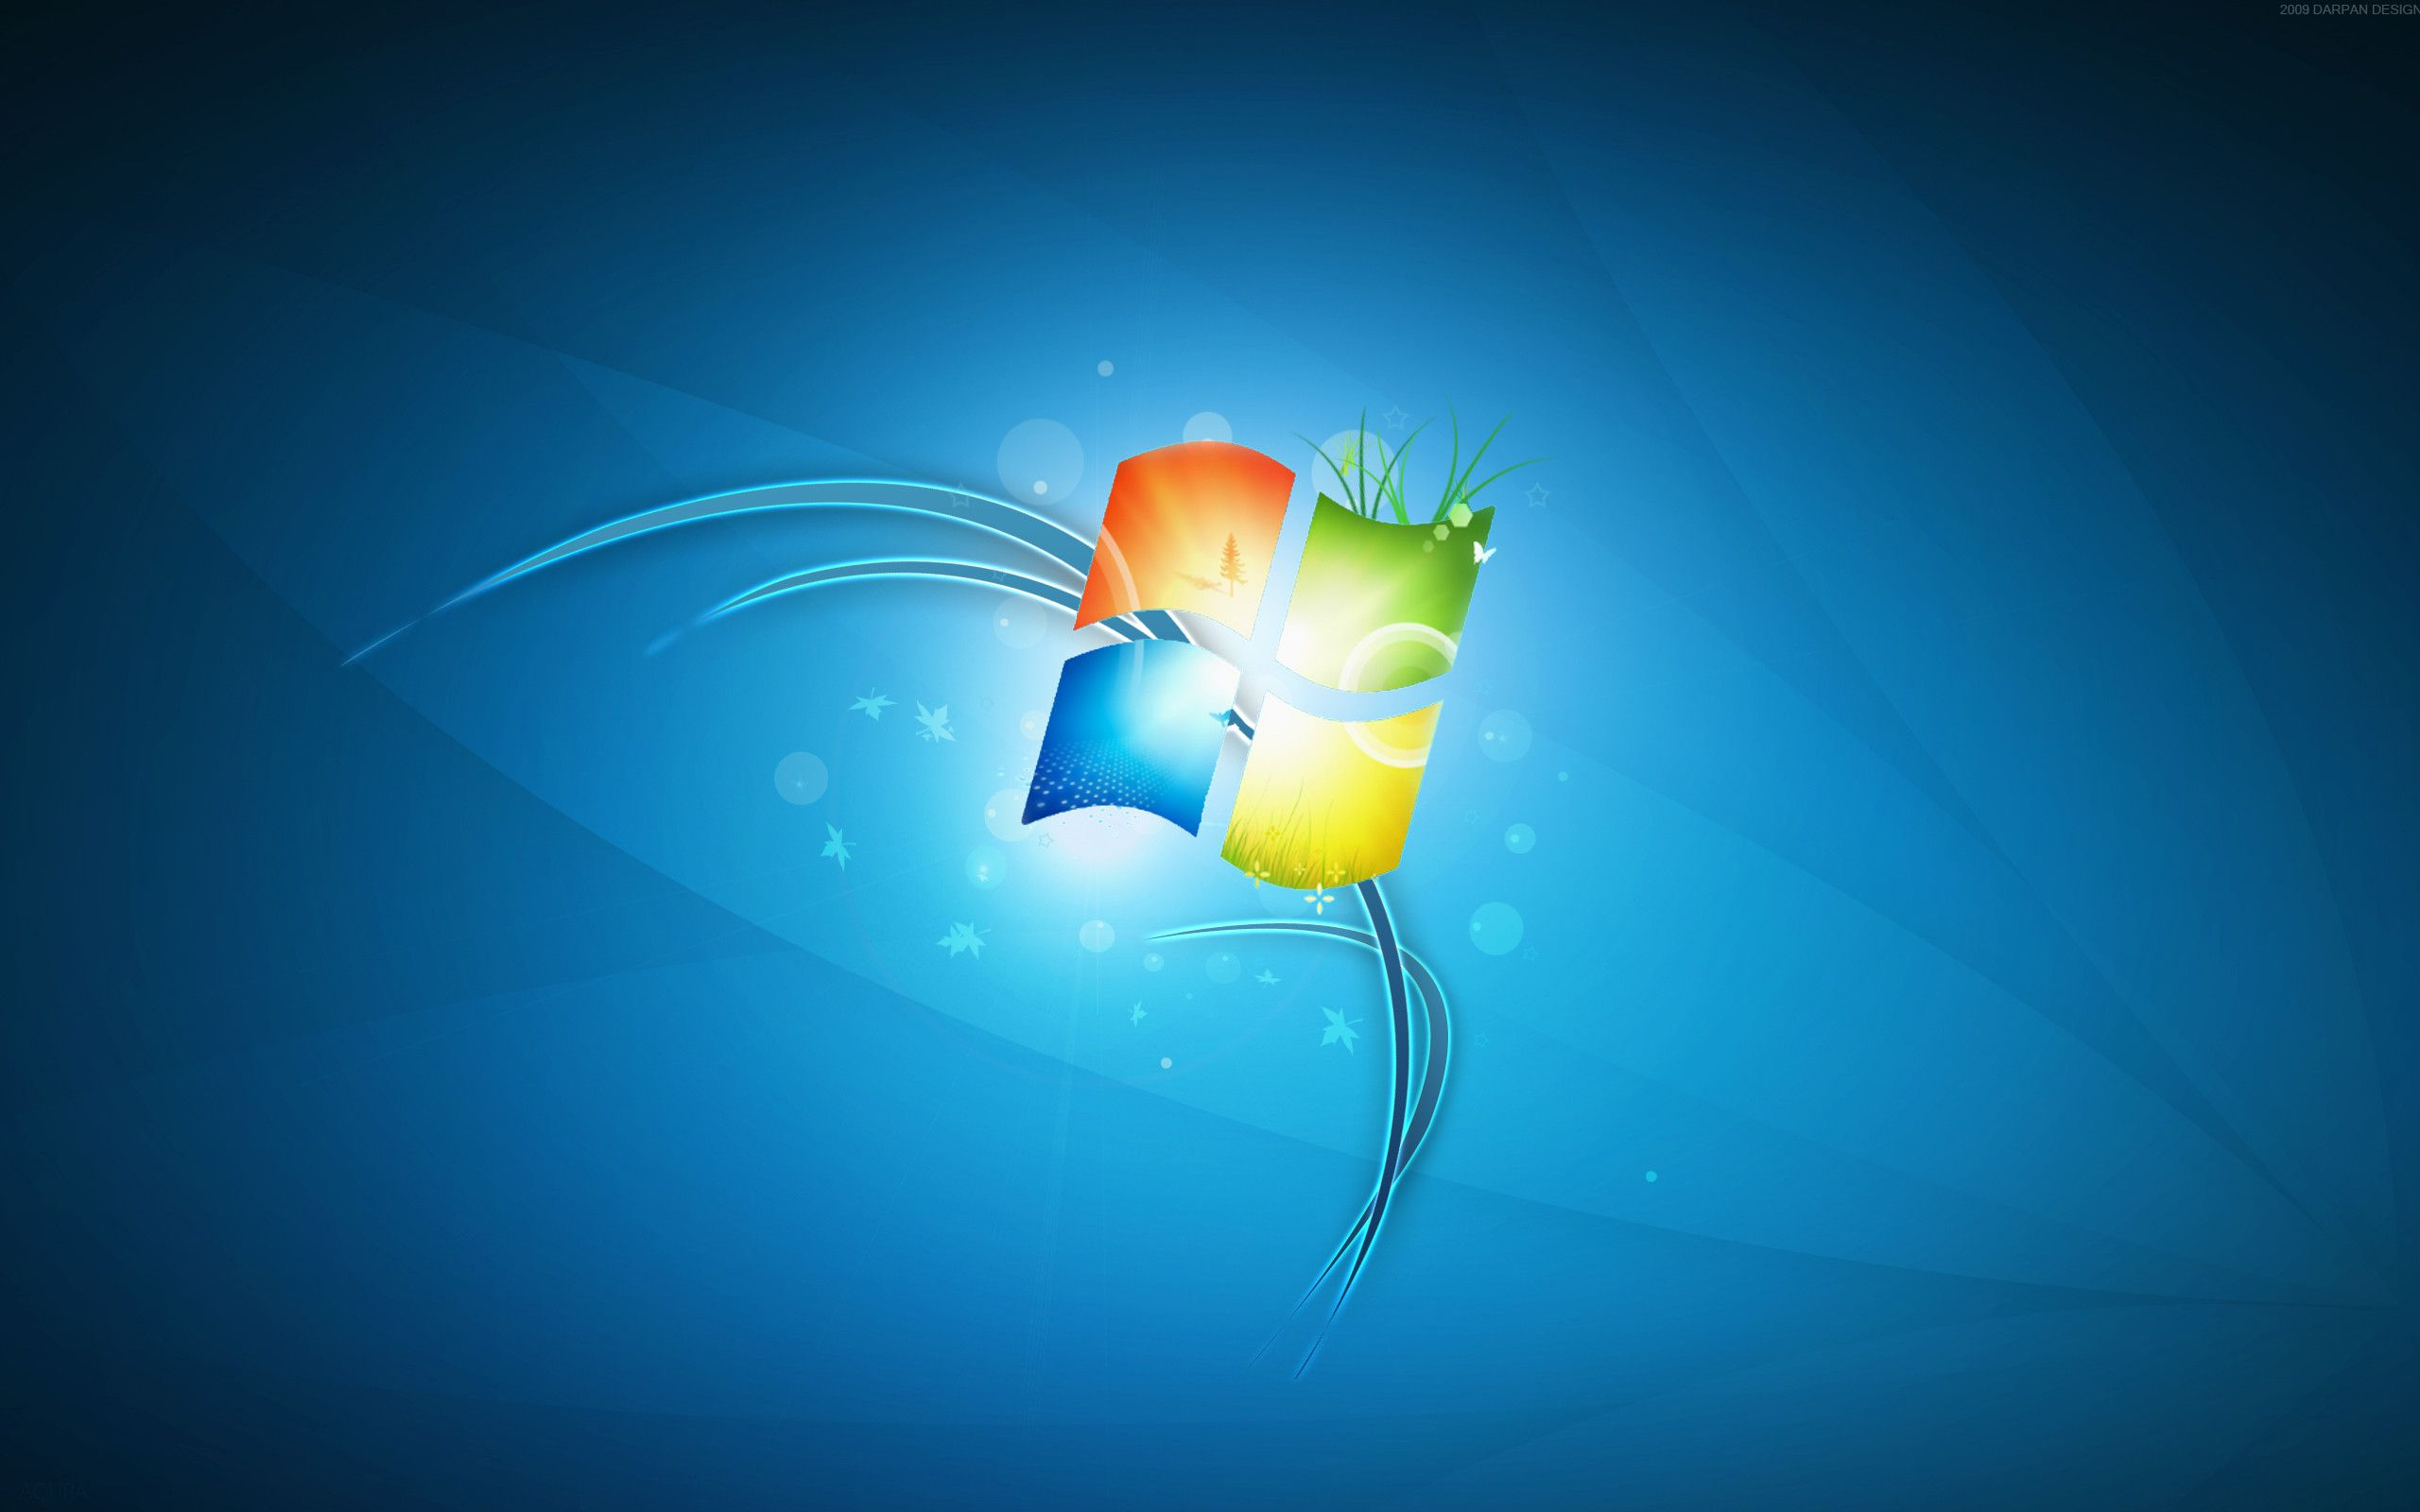 Desktop Wallpaper For Windows 7 Ultimate Free Download